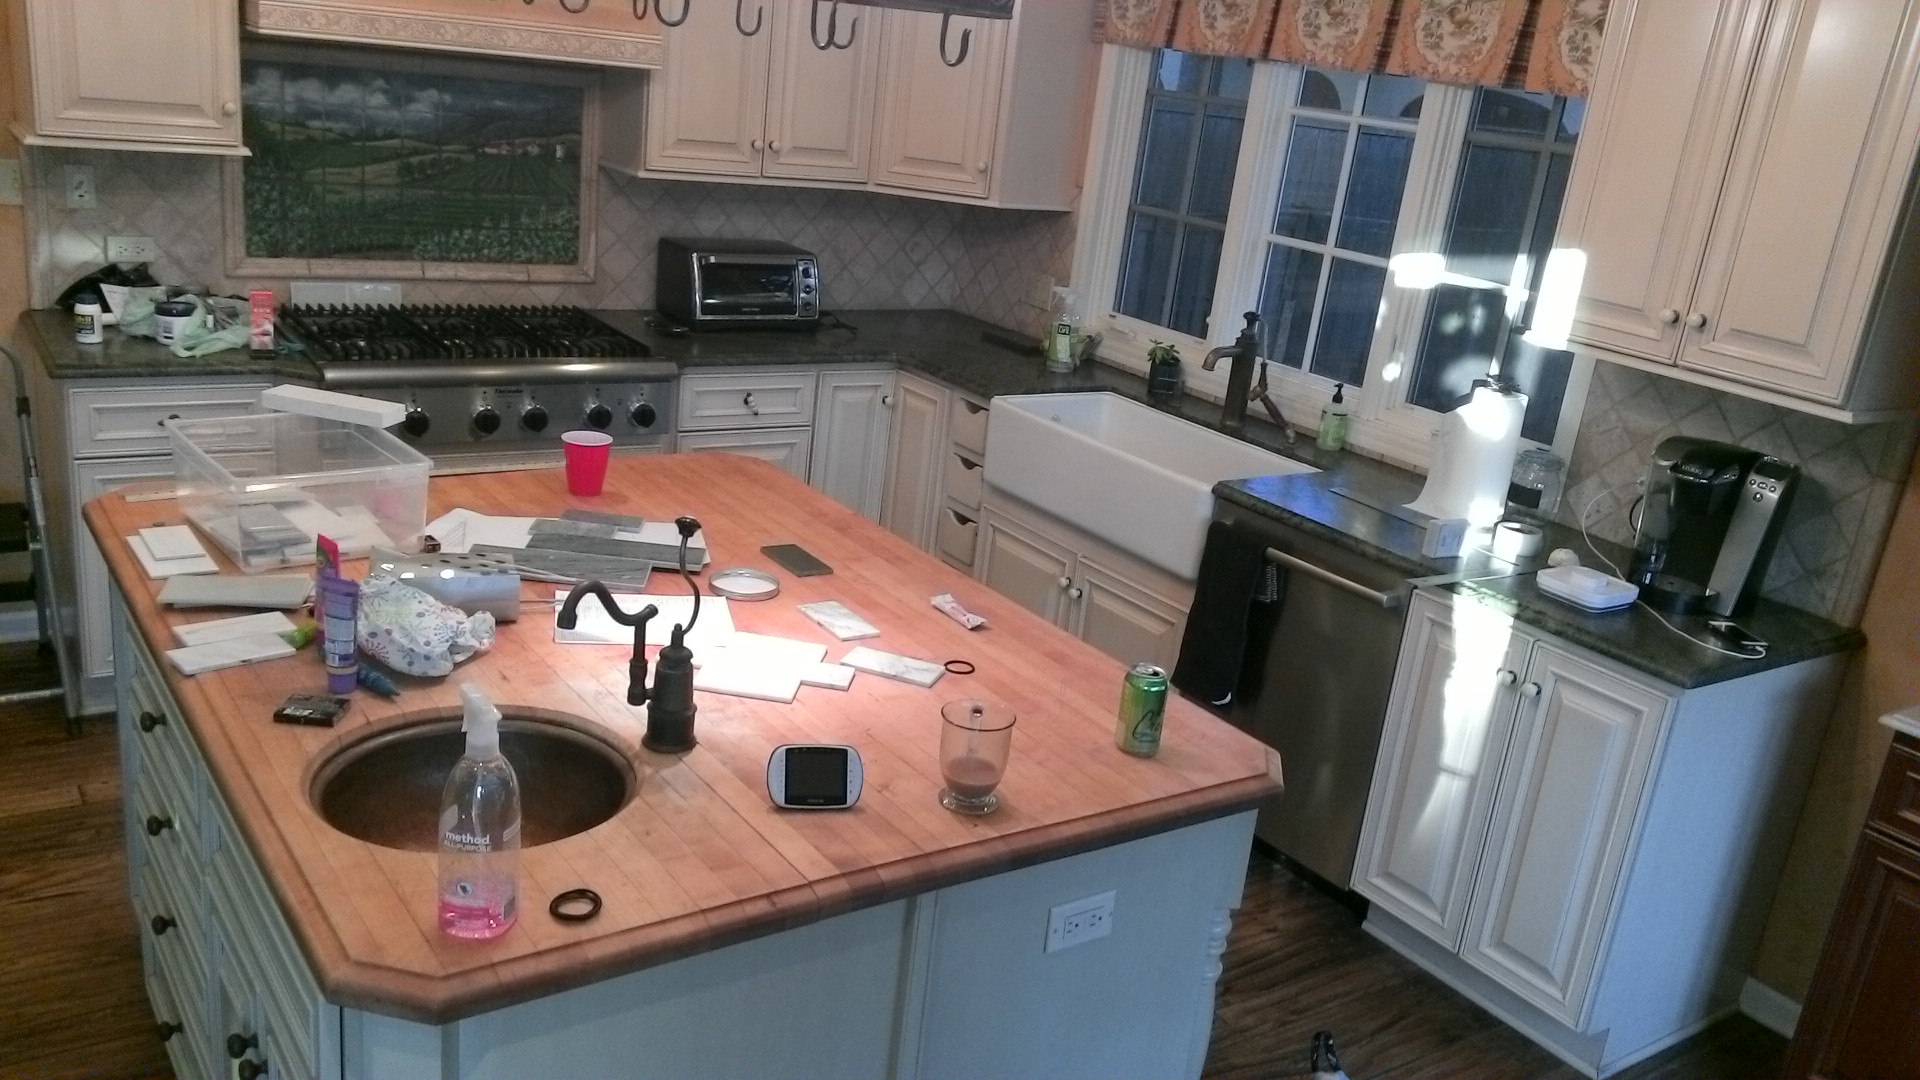 It was time to say addio to the Italian kitchen, including the pastoral backsplash over the cooktop.